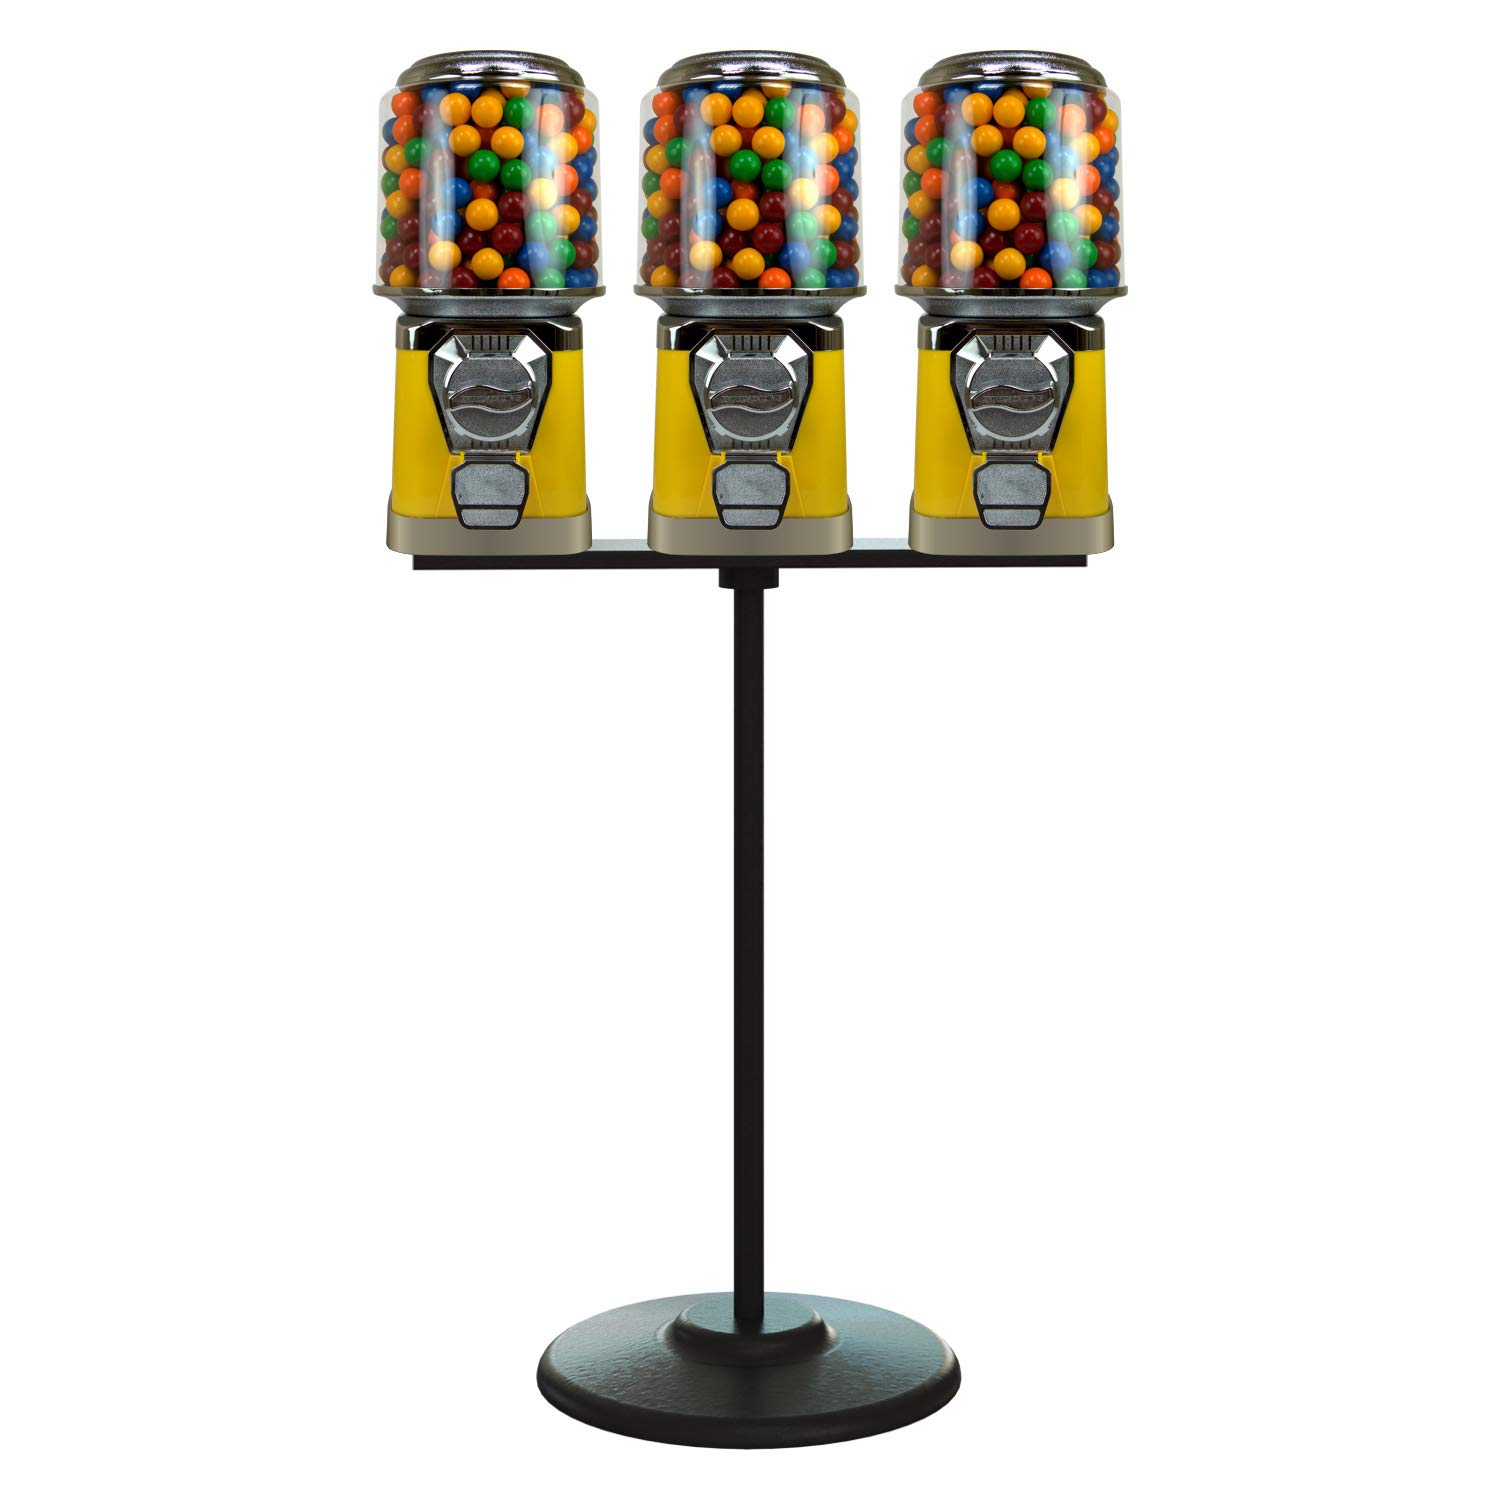 Gumball Machine with Stand - free 3 Machines w Yellow Vending Max 66% OFF Bundled